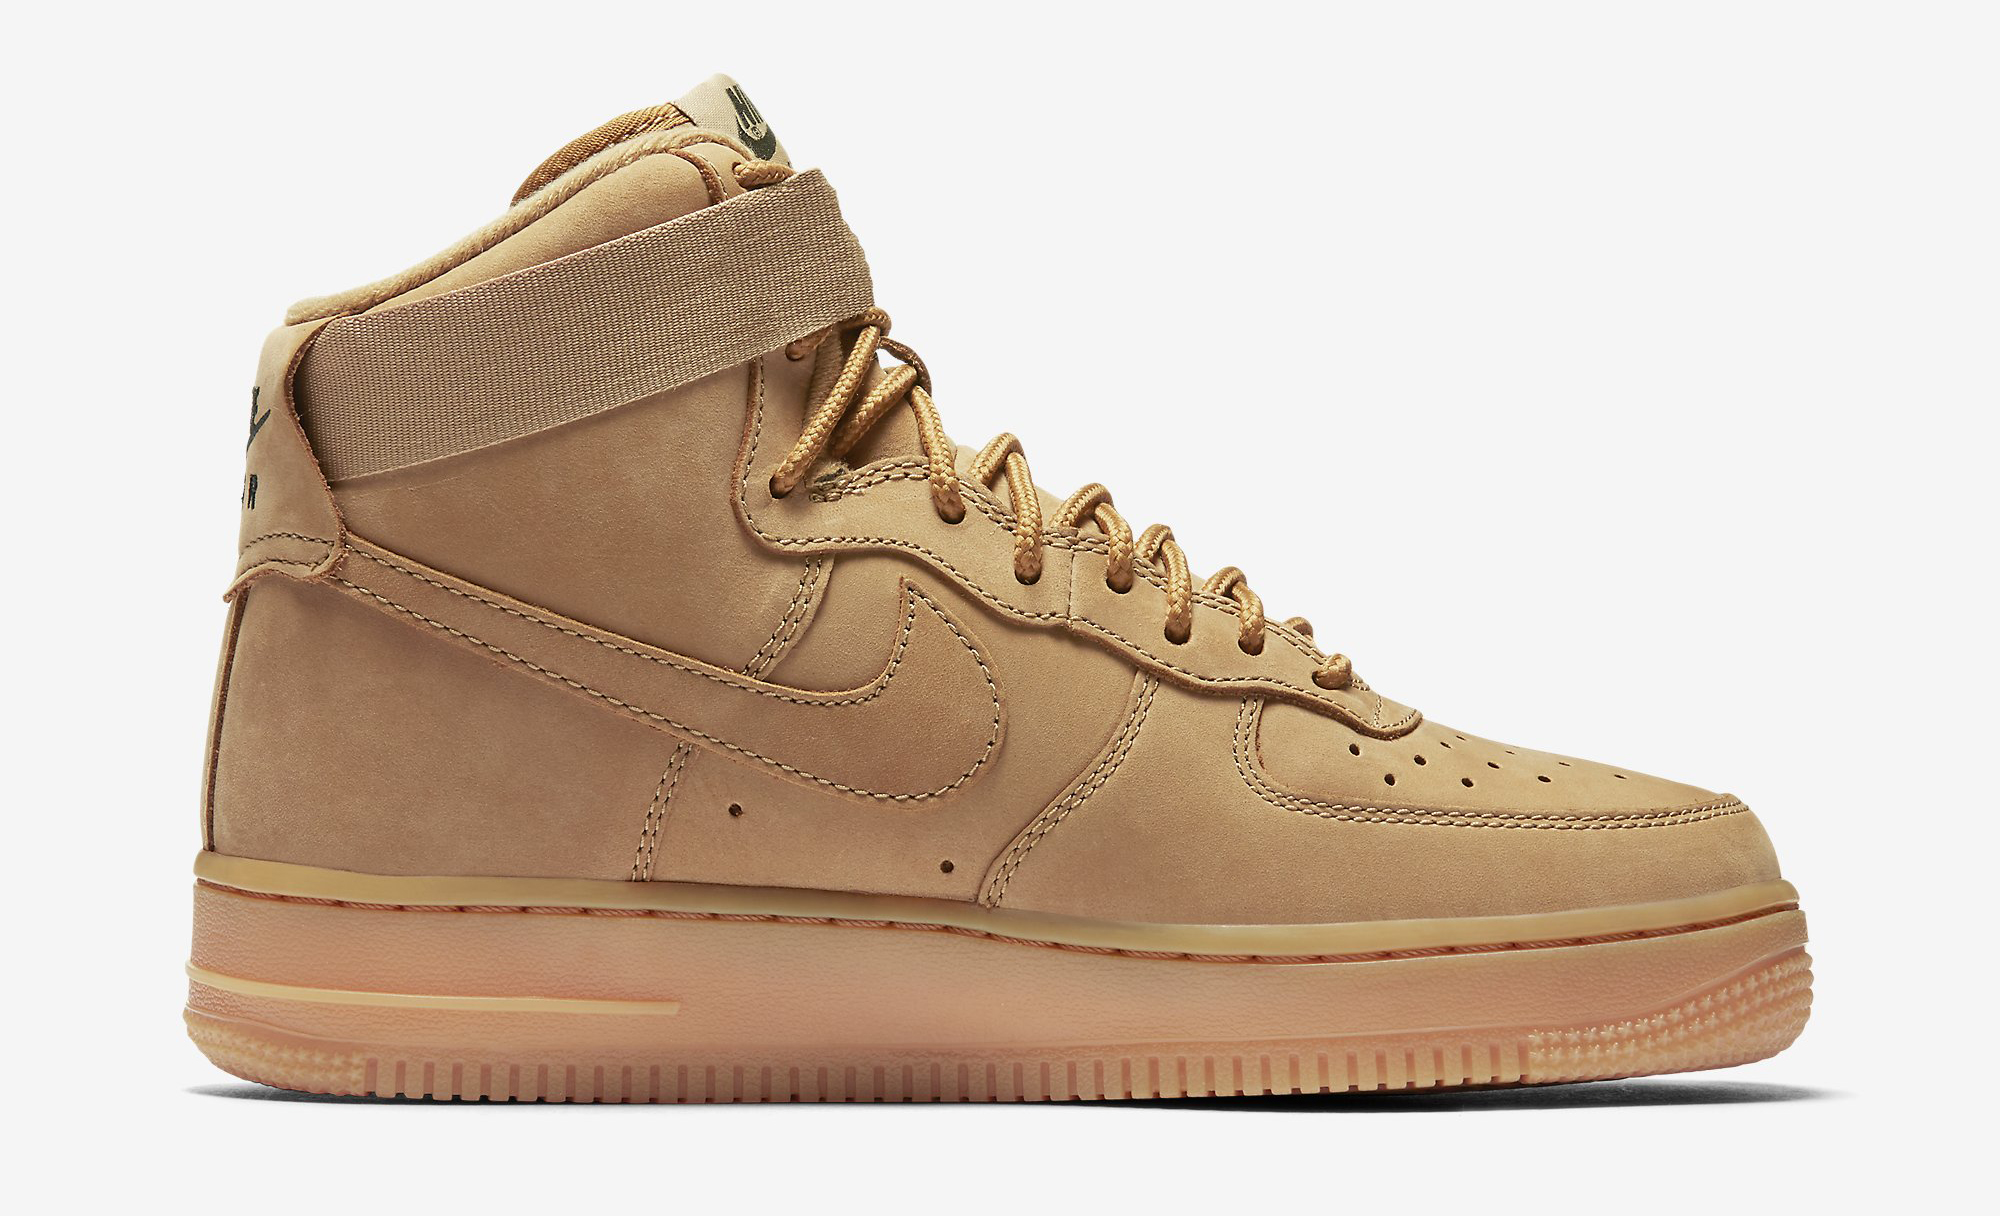 Image via Nike Wheat Nike Air Force 1 654440-200 Medial 340668fbf